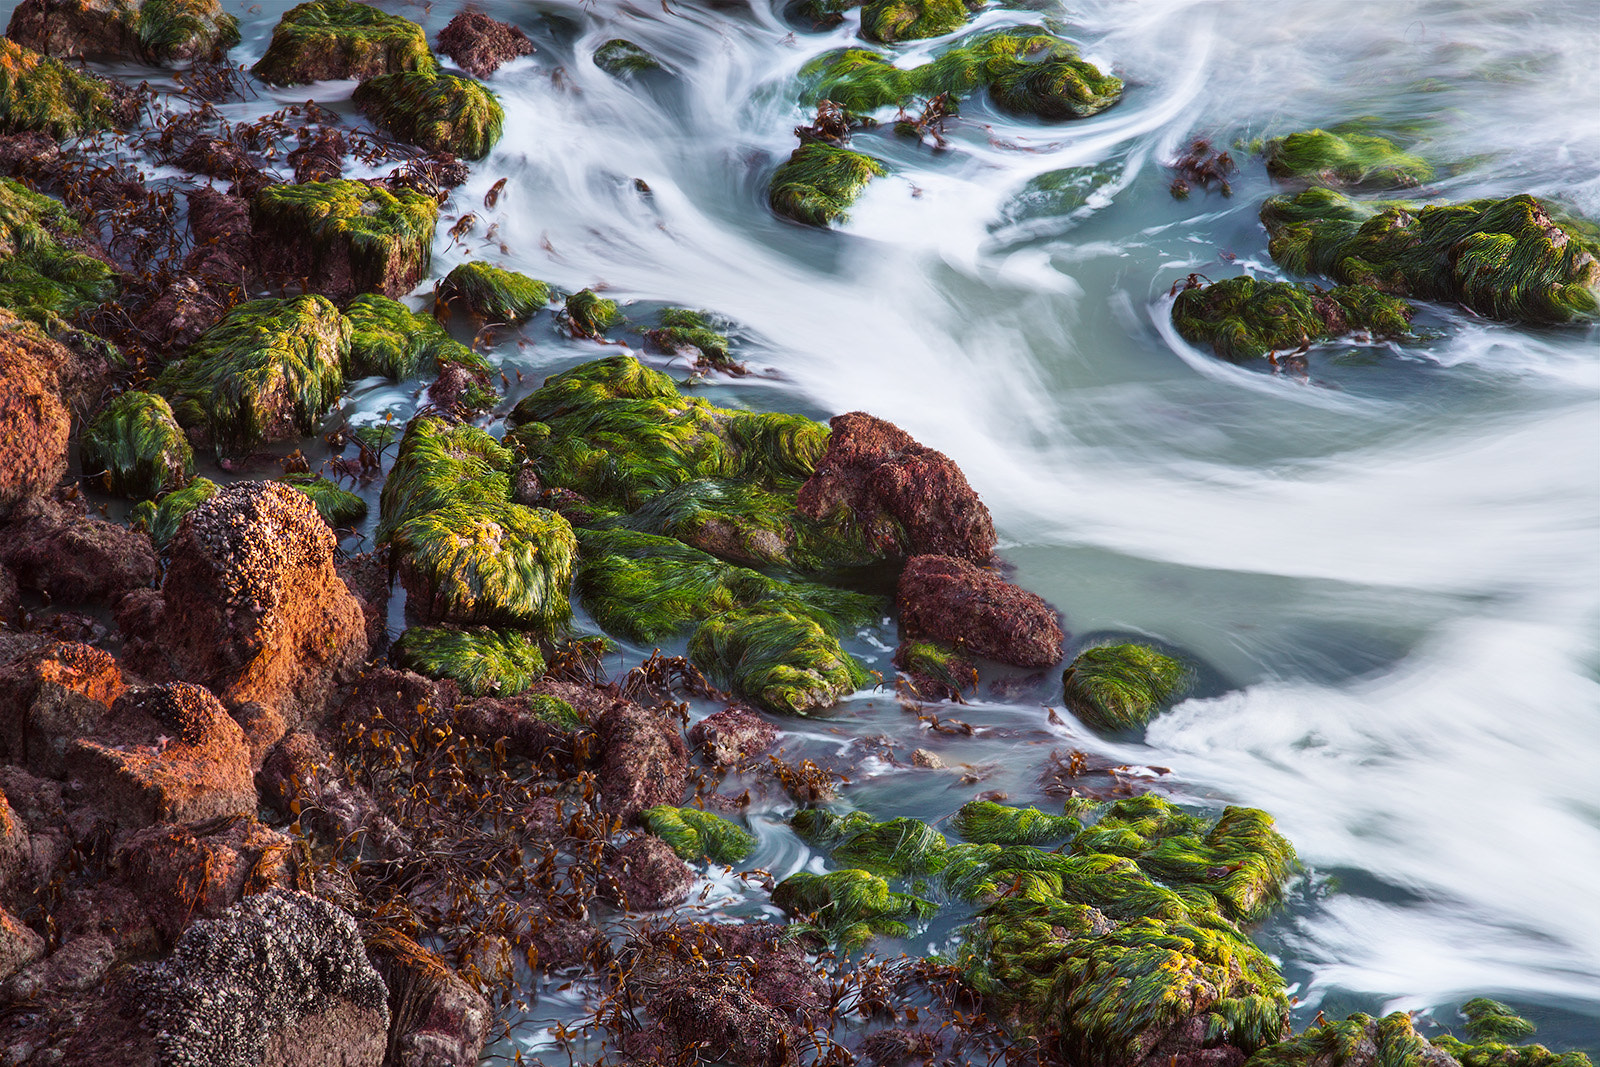 Photograph Seaweed by Ryan Fernandez on 500px